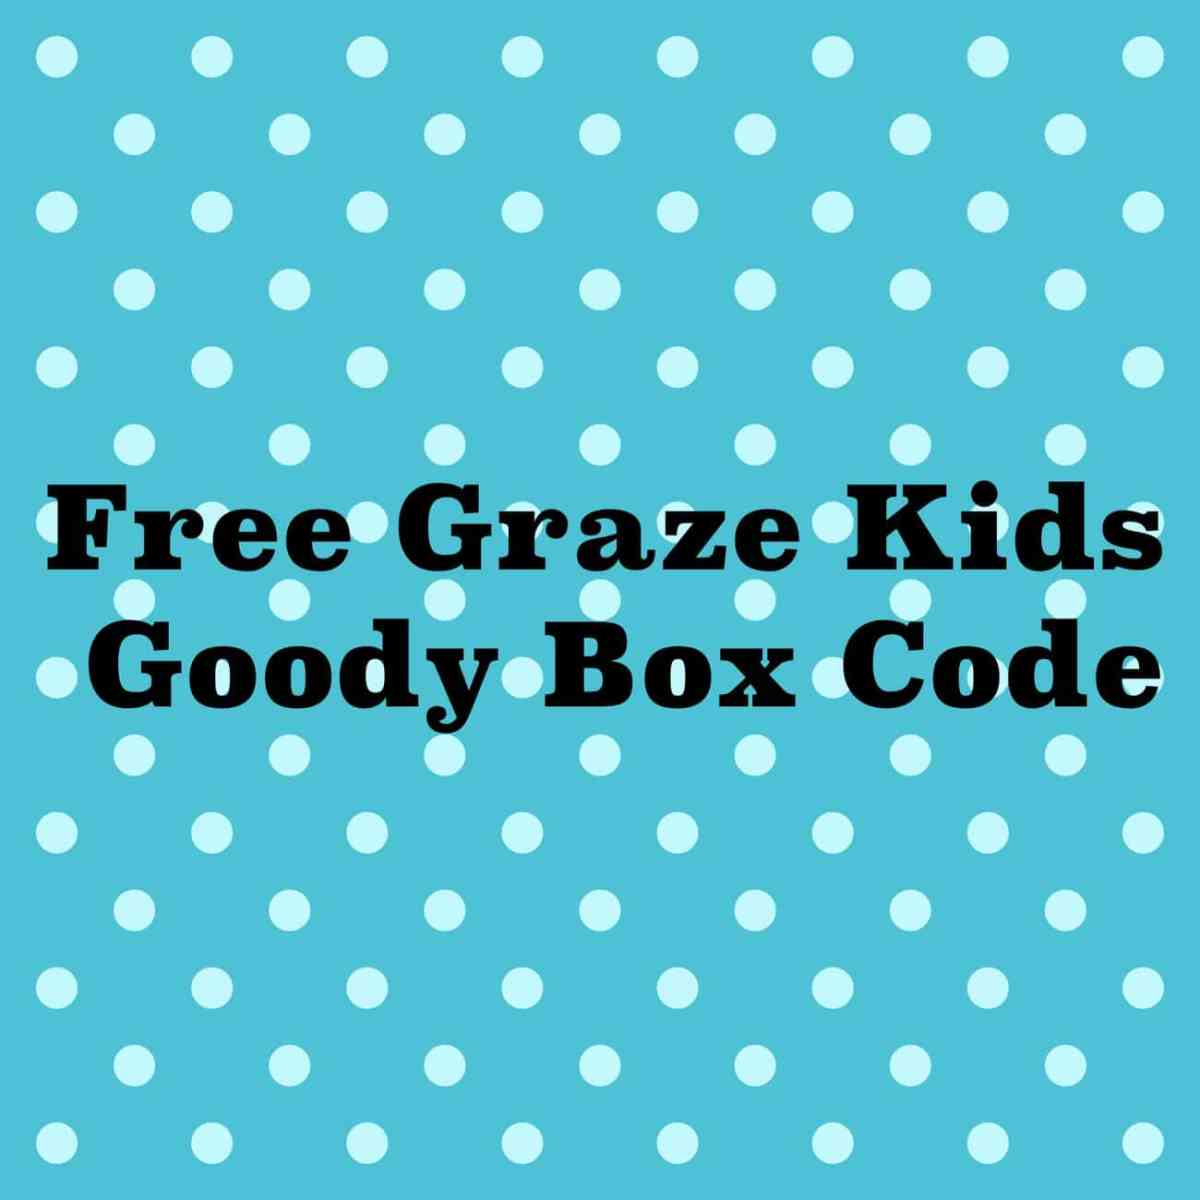 Get a FREE Graze Kids Goodybox